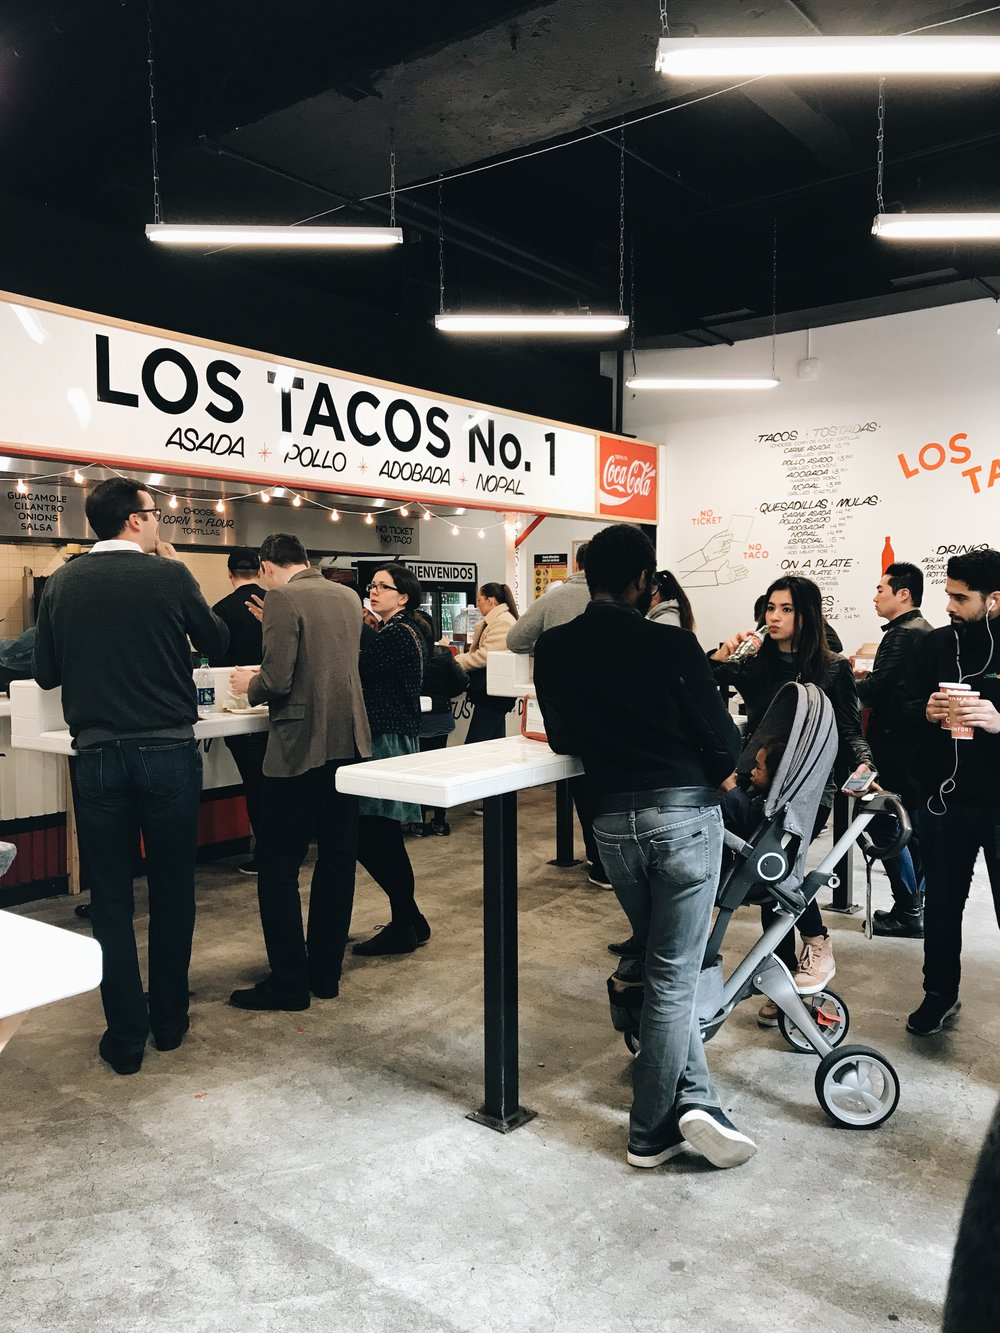 los tacos no. 1 on west 46th